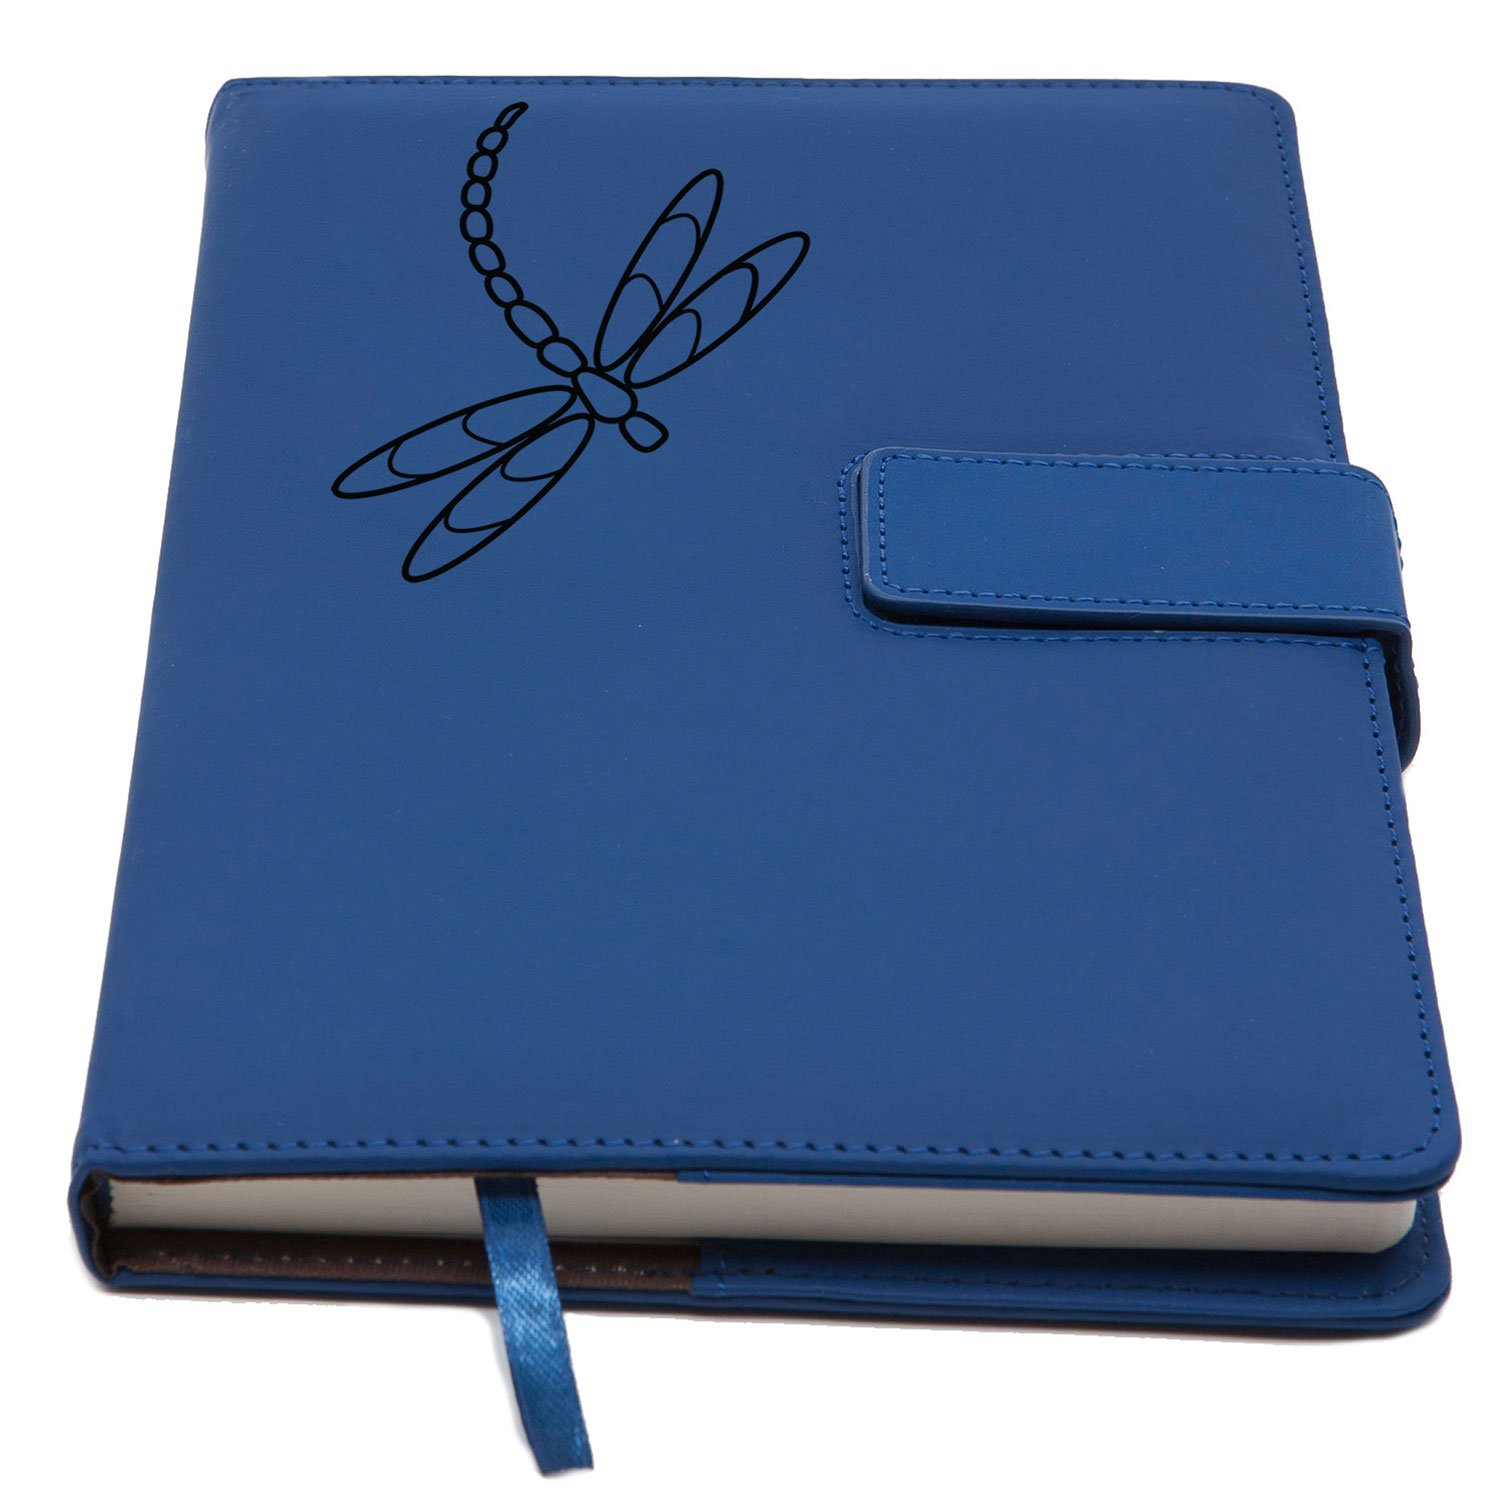 The Dragonfly Refillable Writing Journal | Faux Leather Cover, Magnetic Clasp + Pen Loop | Blank Notebook | 200 Lined Pages, 5 x 8 Inches for Travel, Personal, Poetry | Blue | The Amazing Office by The Amazing Office (Image #1)